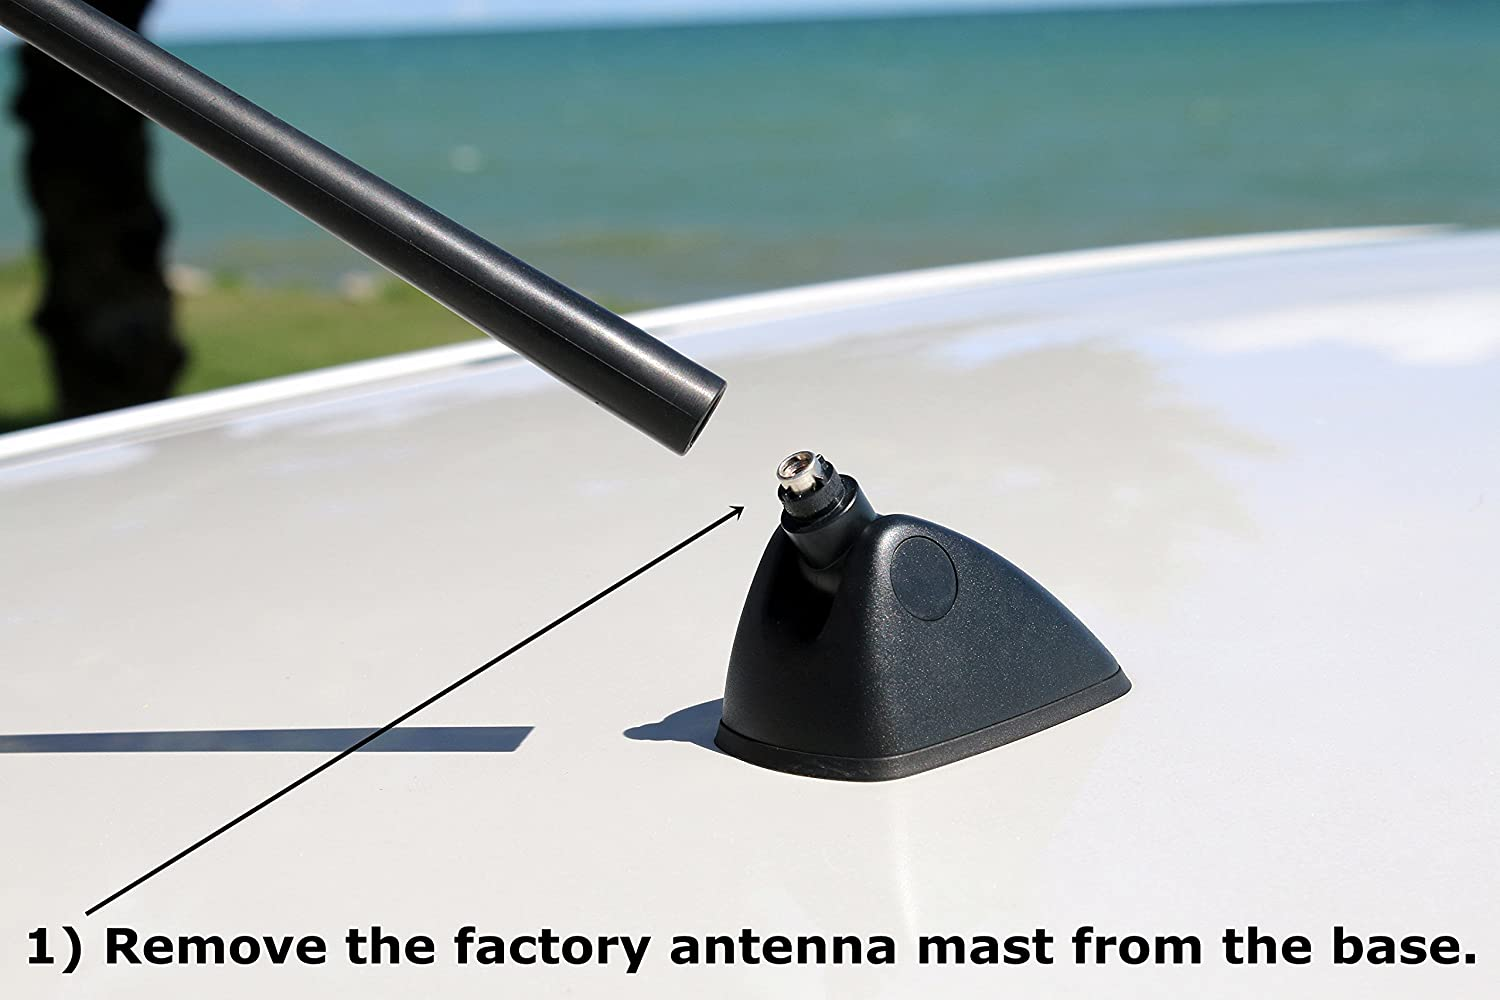 AntennaMastsRus AM-FM Roof Antenna Mast is Compatible with Subaru Impreza WRX 2008-2016